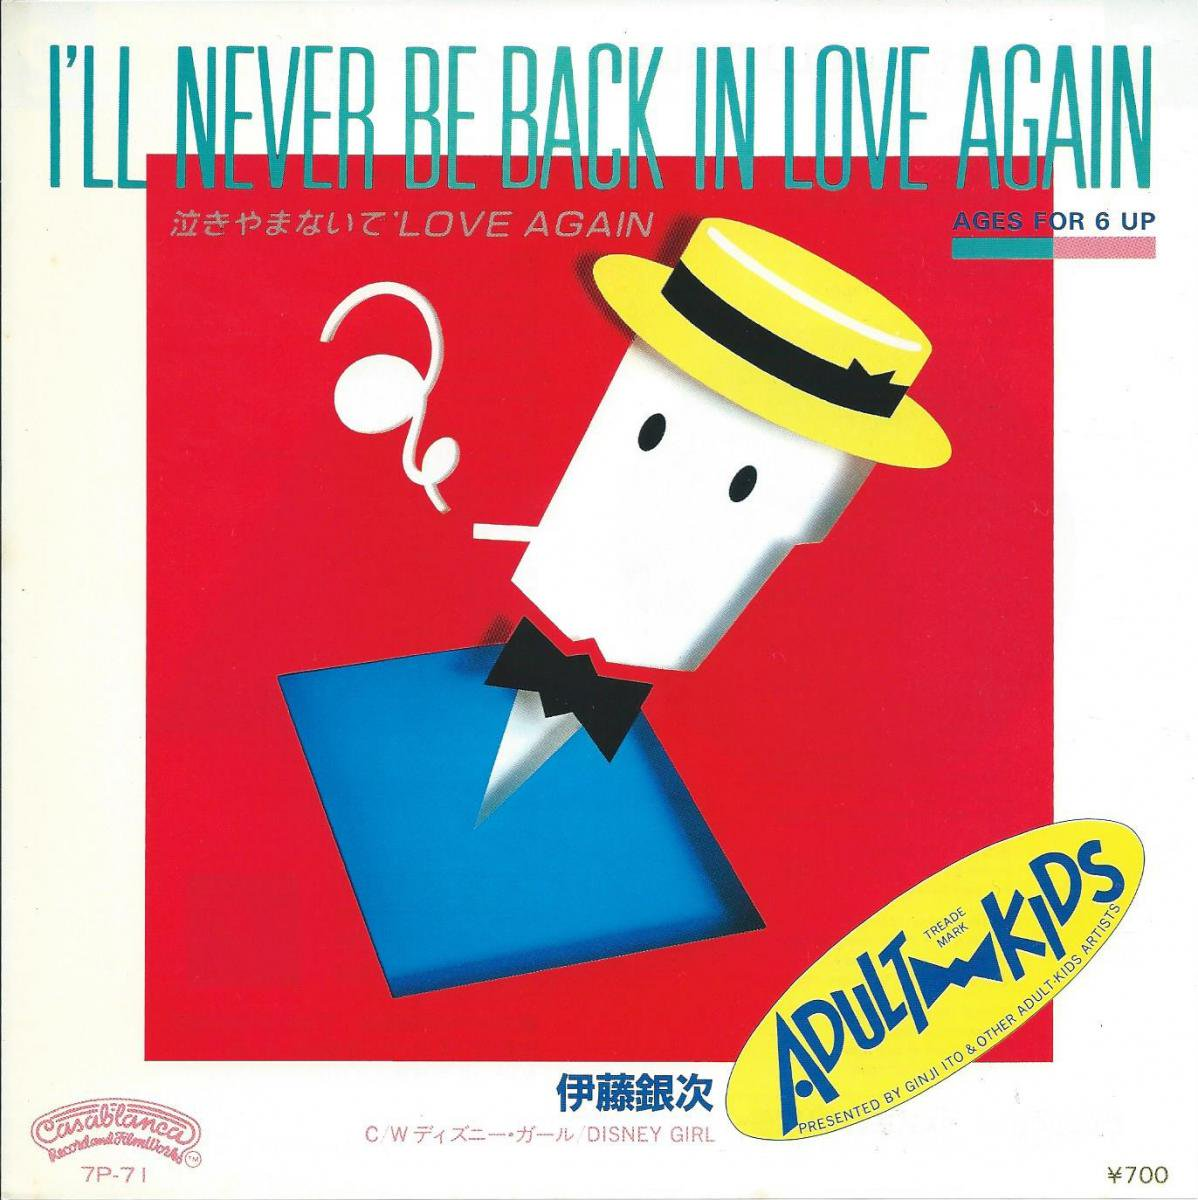 伊藤銀次 GINJI ITO / 泣きやまないで 'LOVE AGAIN  I'LL NEVER BE BACK IN LOVE AGAIN (7